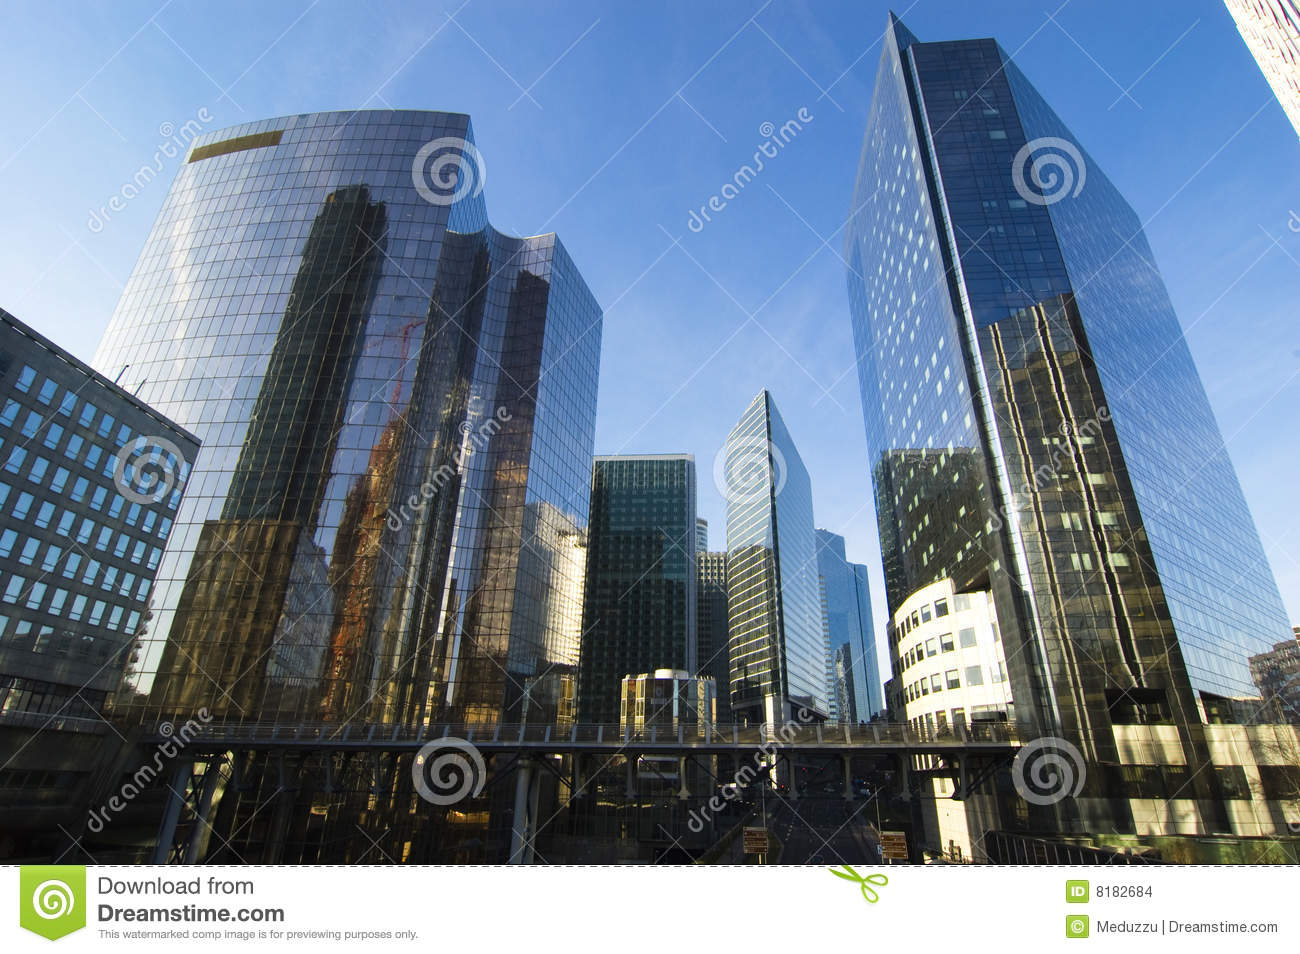 Modern Architecture In Paris Stock Images - Image: 8182684 - photo#25